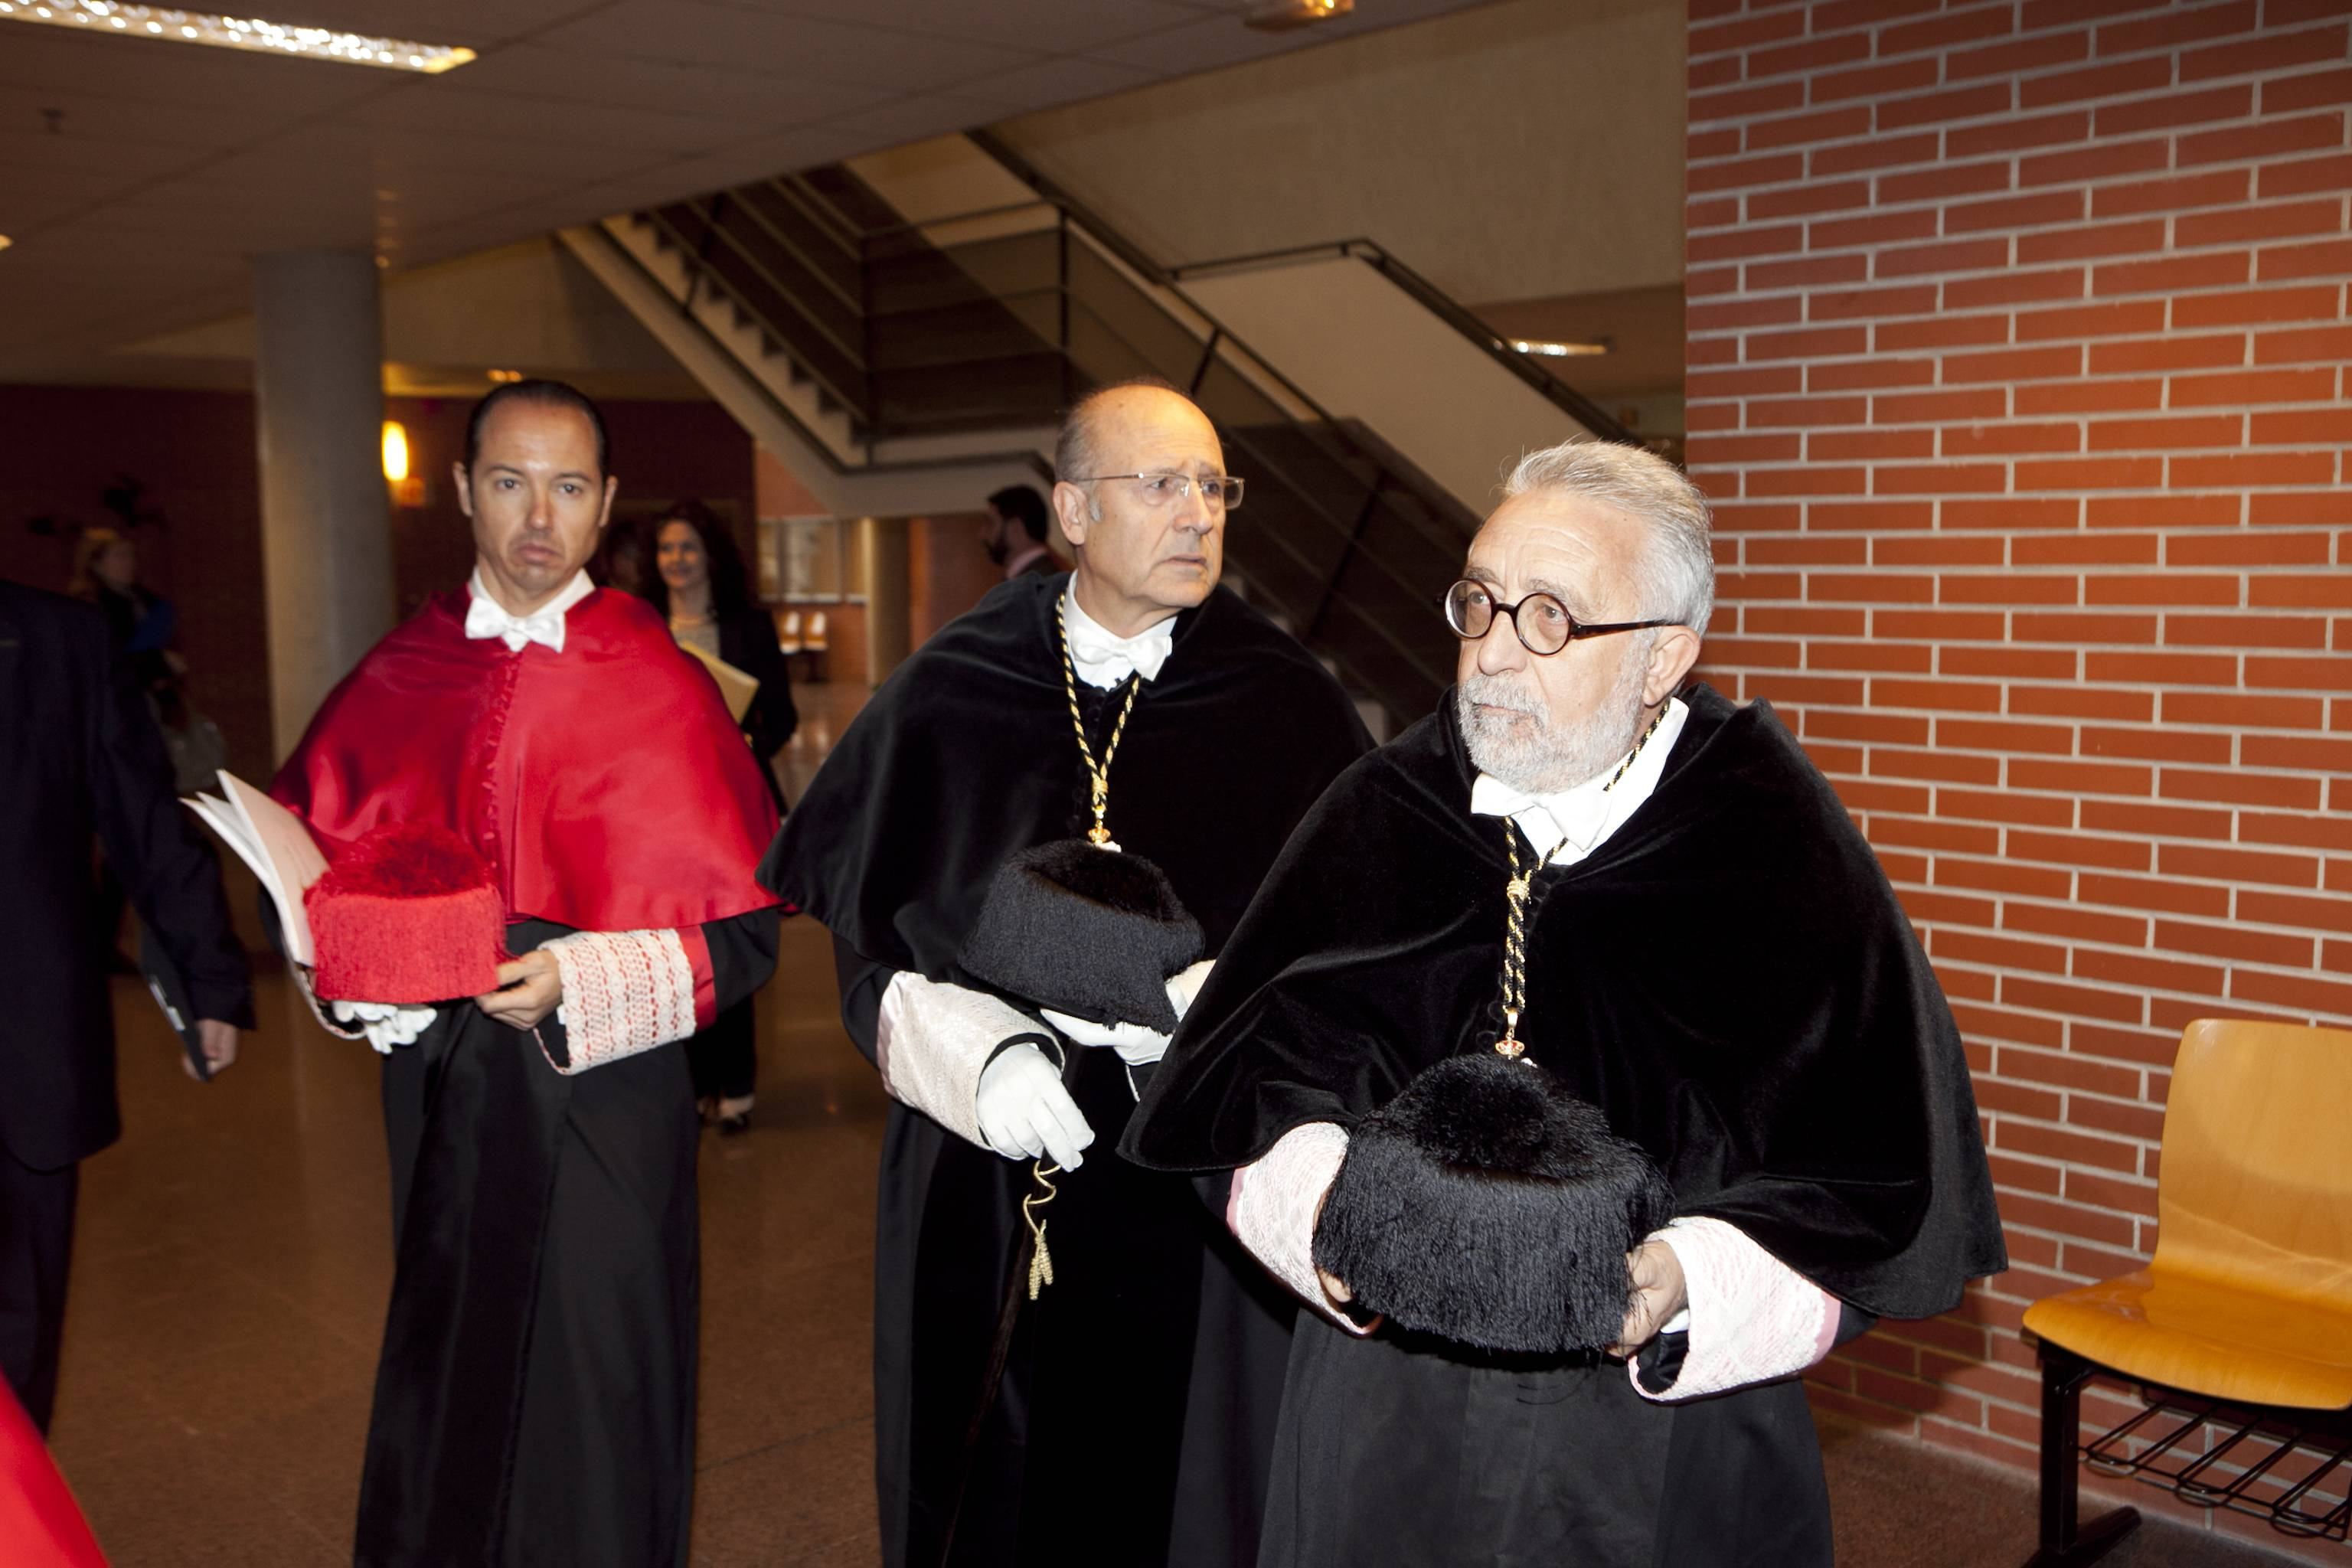 doctor-honoris-causa-luis-gamir_mg_0634.jpg